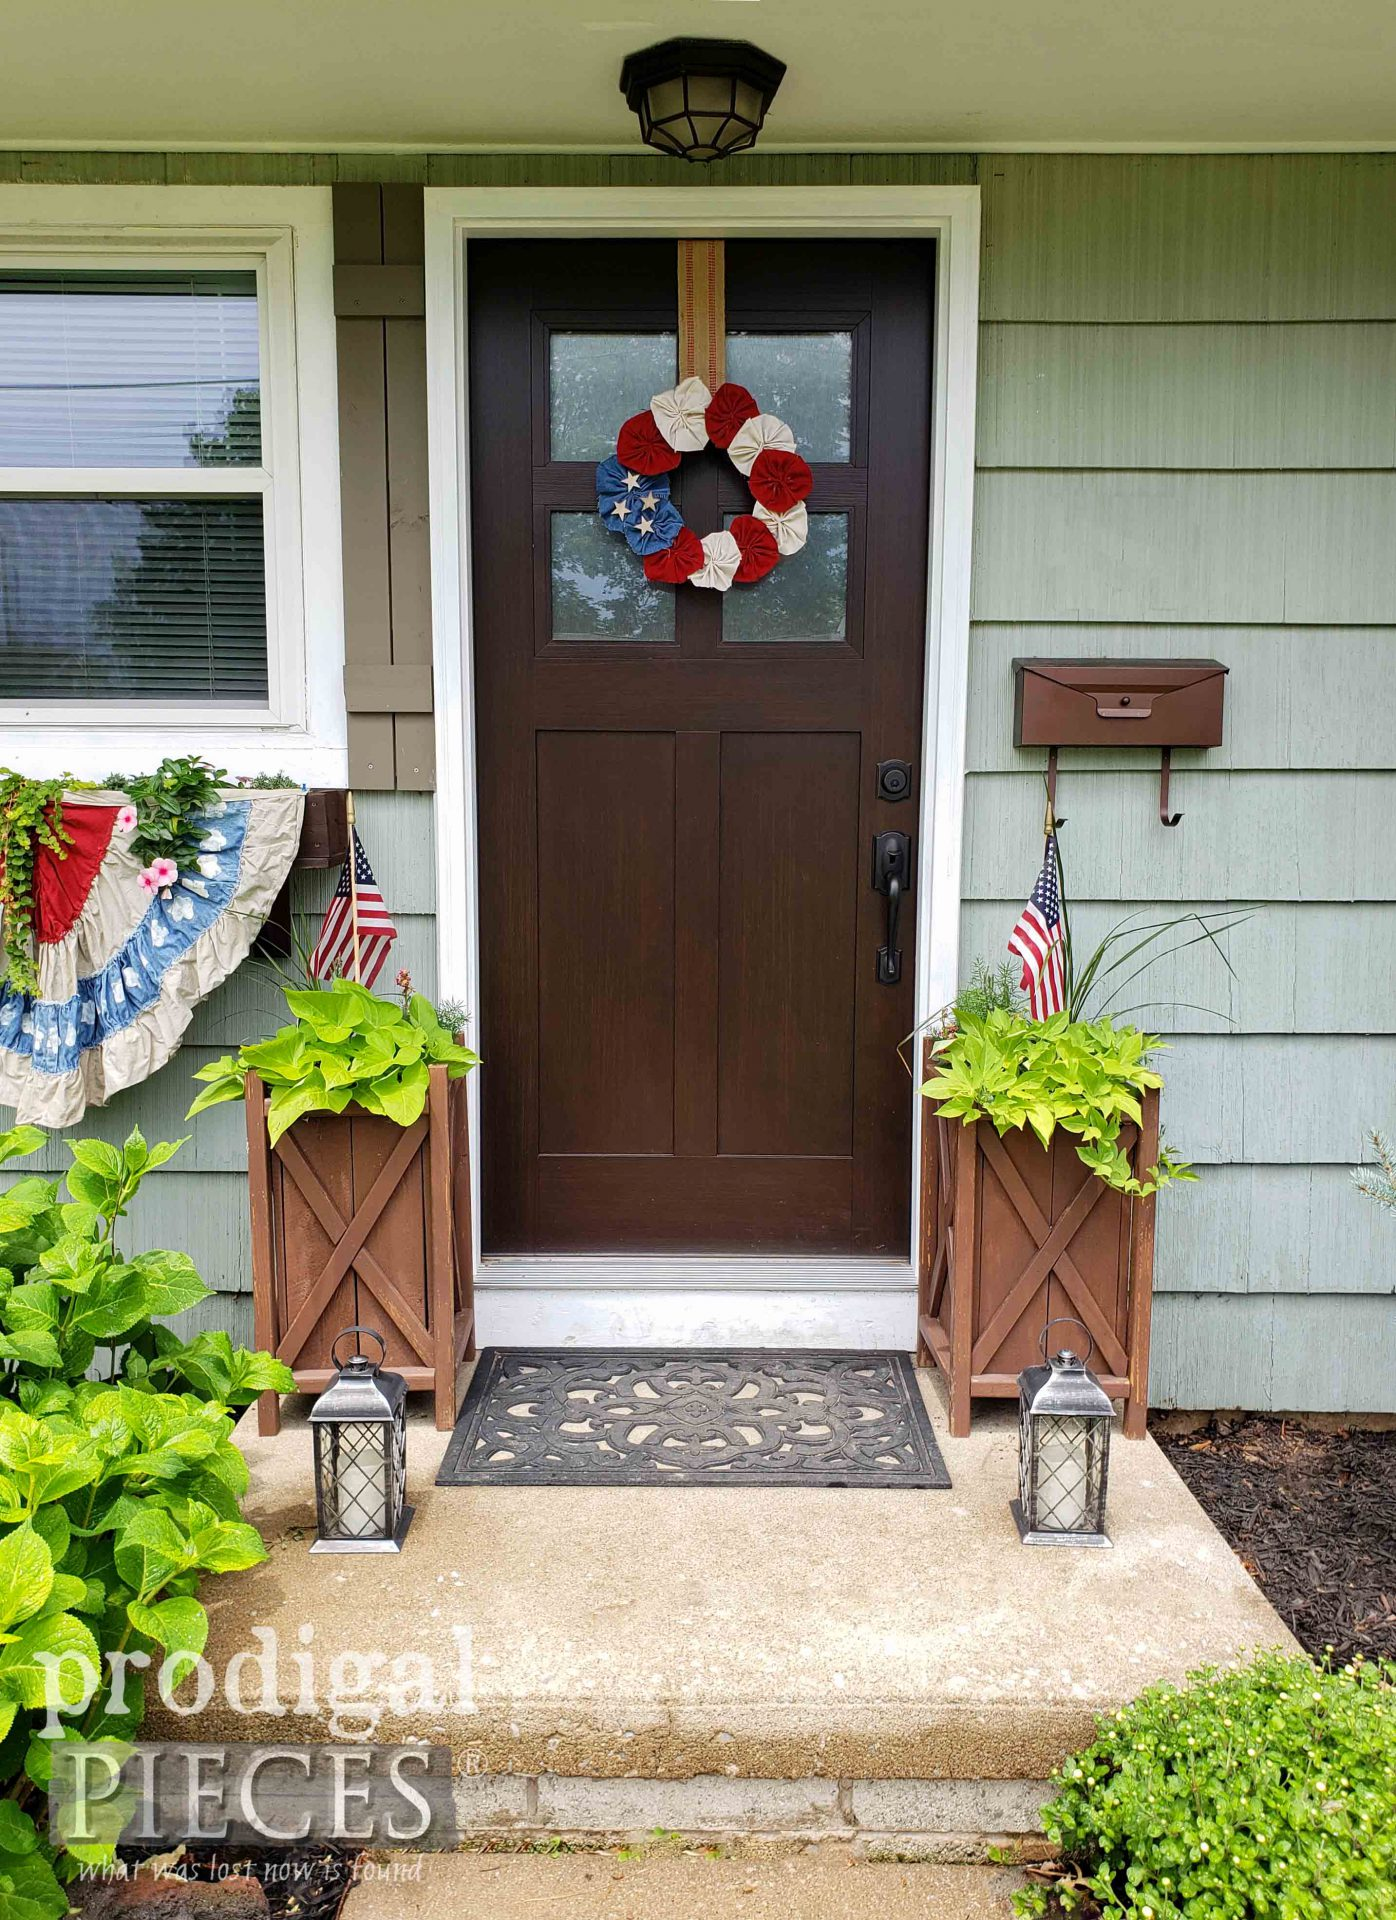 DIY 4th of July Decor from Refashioned Fabric by Larissa of Prodigal Pieces | Tutorial at prodigalpieces.com #prodigalpieces #diy #4thofjuly #home #homedecor